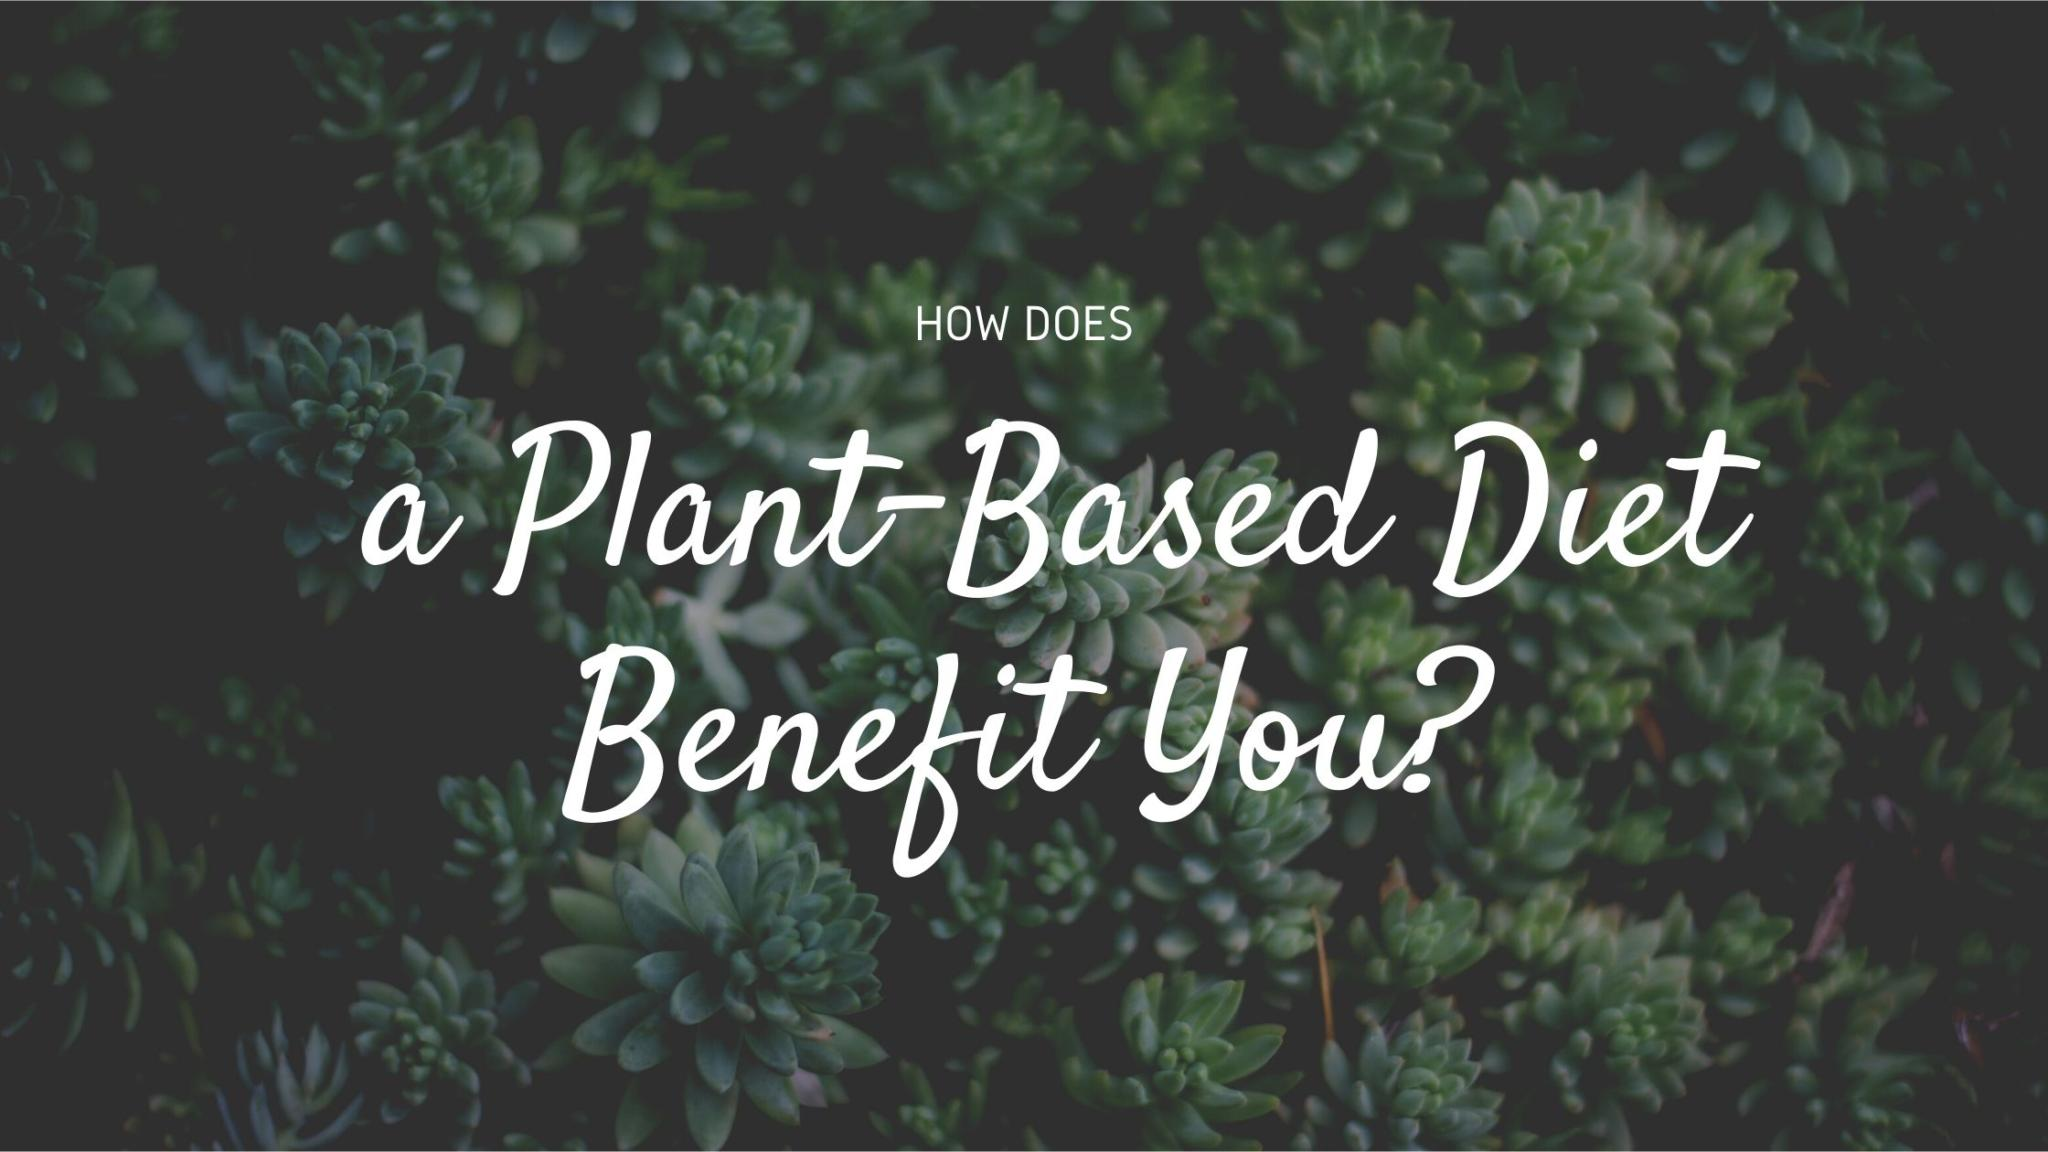 How Does a Plant Based Diet Benefit You?